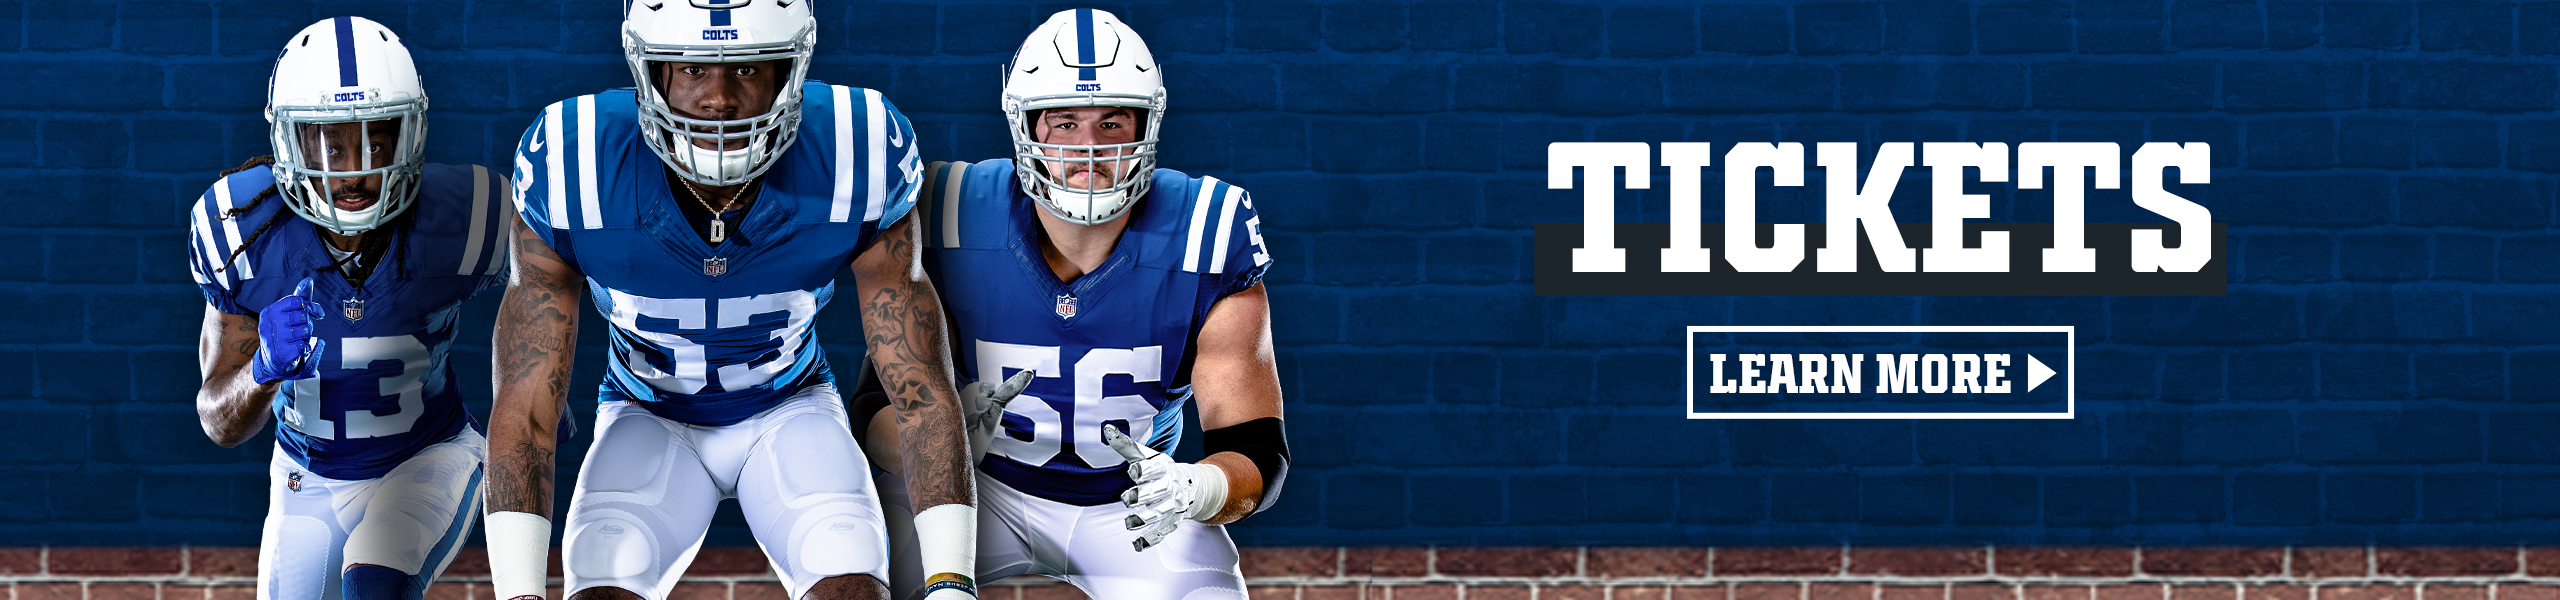 Indianapolis Colts Tickets  Learn More